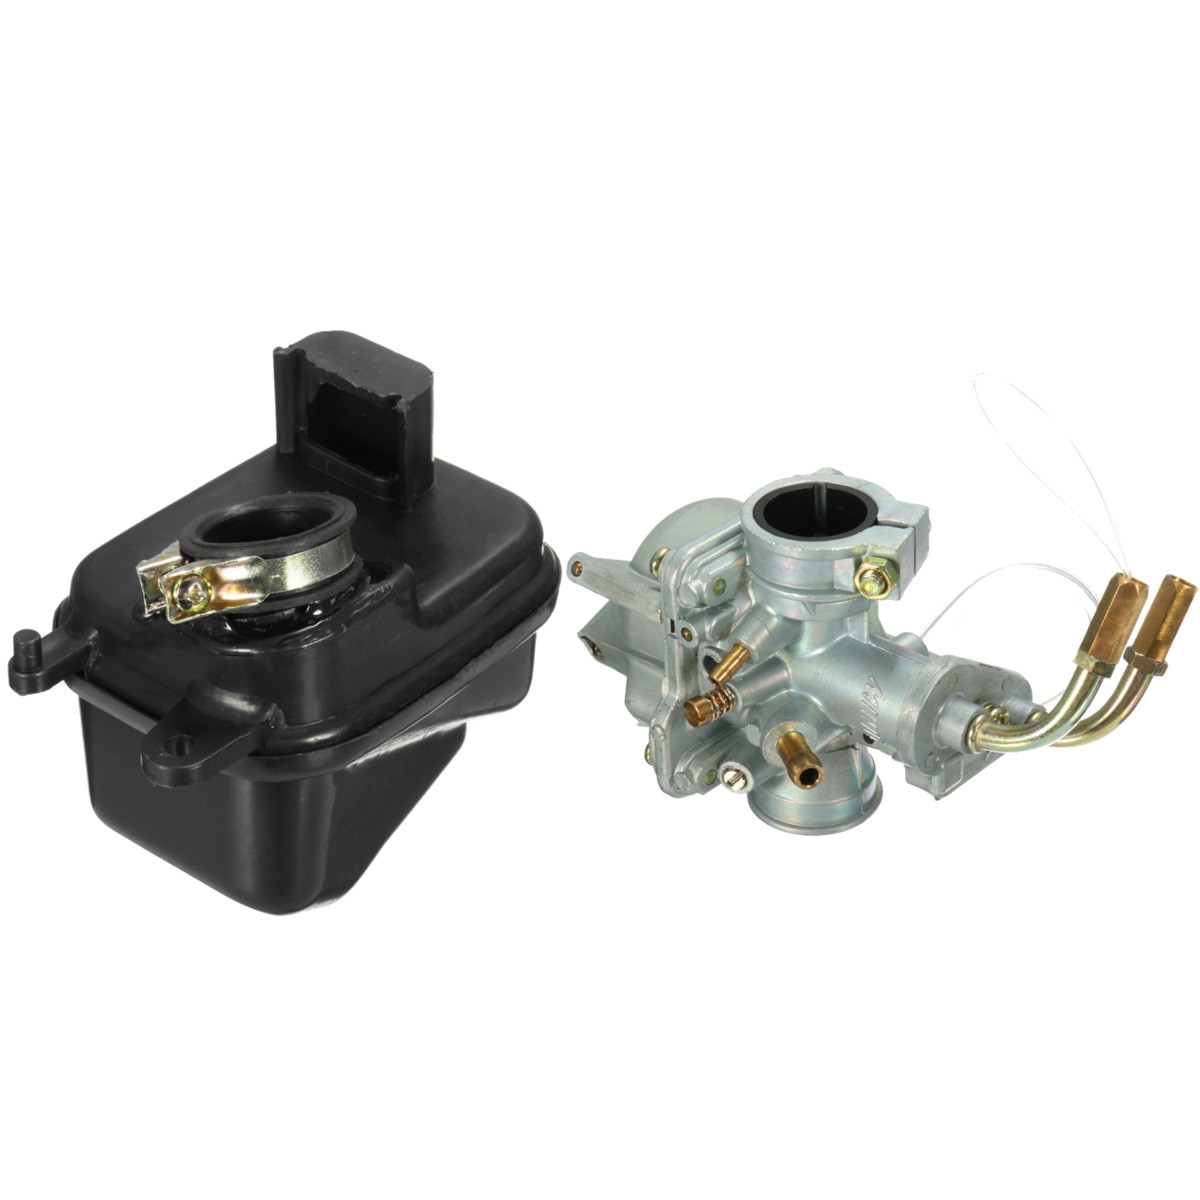 1 Set Motorcycle Carb Carburetor with Air Filter Box Set For Yamaha PEEWEE PW50 PY50 Replace Black Silver1 Set Motorcycle Carb Carburetor with Air Filter Box Set For Yamaha PEEWEE PW50 PY50 Replace Black Silver